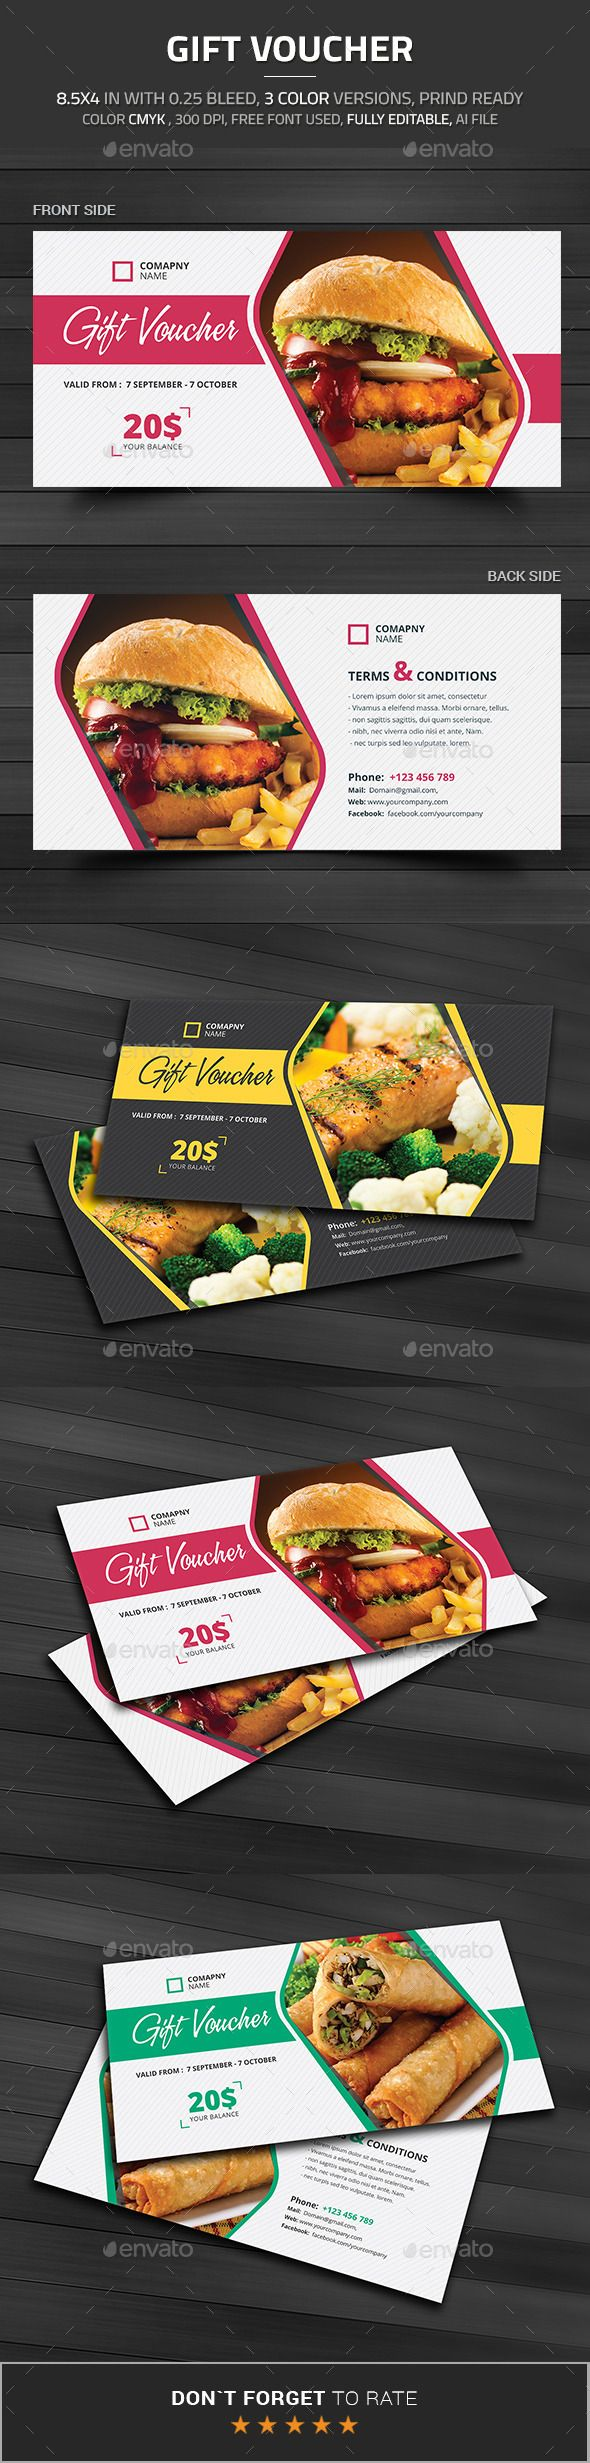 Gift Voucher Template #design Buy and Download: http://graphicriver.net/item/gift-voucher/12836540?ref=ksioks